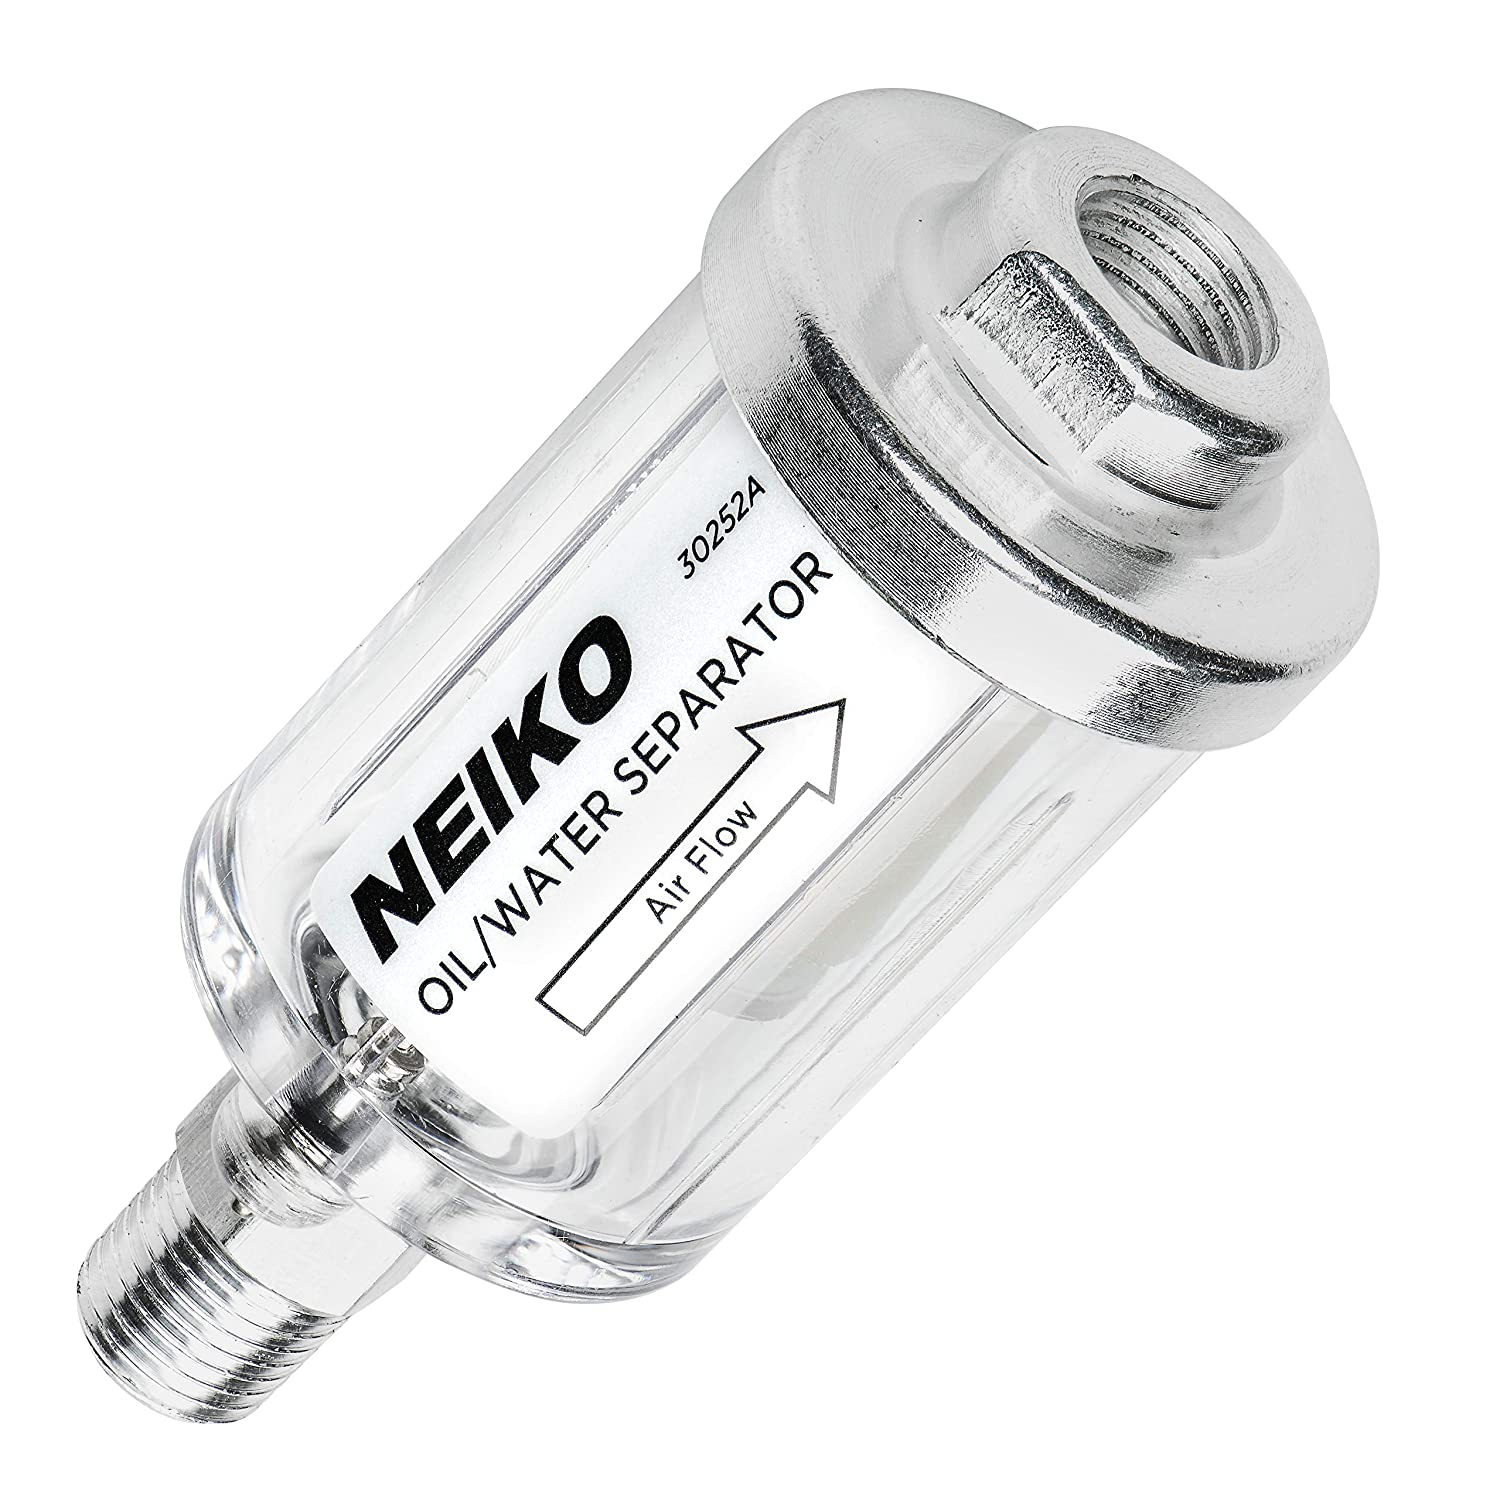 """Neiko 30252A Water and Oil Separator for Air Line, 1/4"""" NPT Inlet and Outlet, 90 psi"""